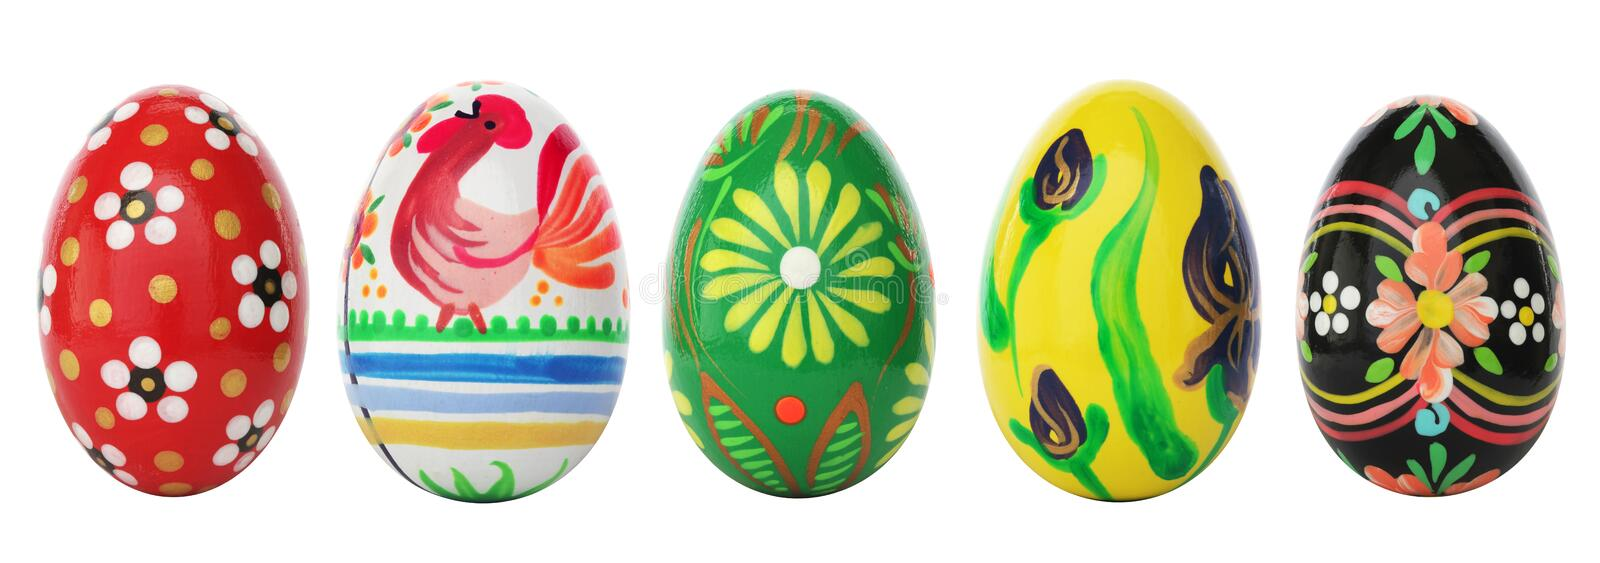 Hand painted Easter eggs isolated on white. Spring patterns royalty free stock image